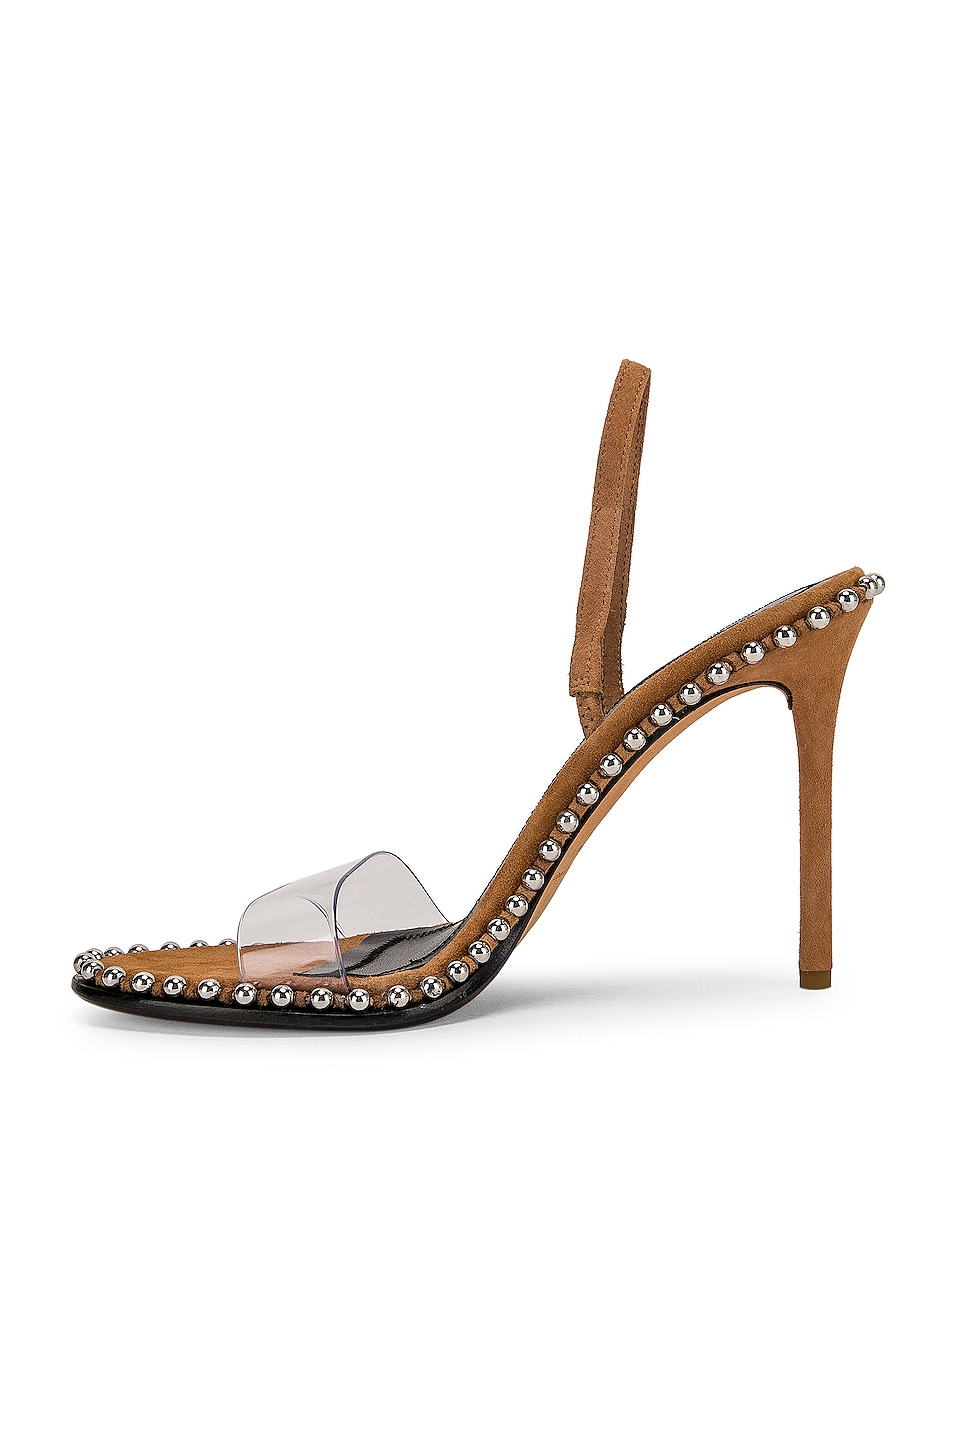 Image 5 of Alexander Wang Nova Suede Heel in Clay